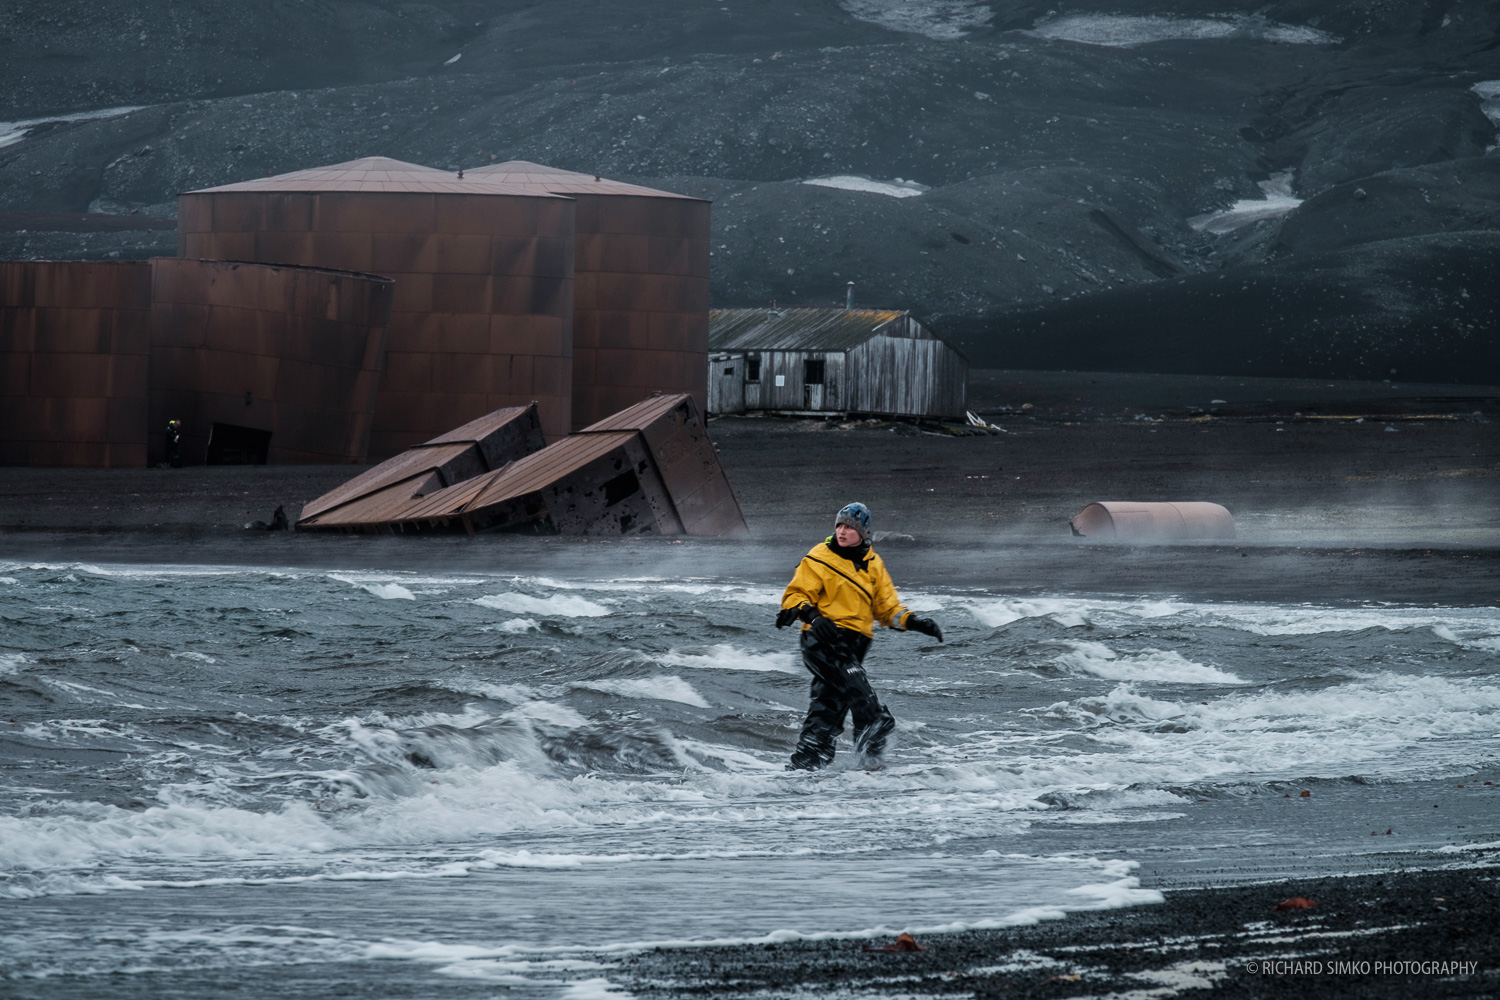 Belen in her wet suit sees of a zodiac while trying to keep ballance in rather rough swell in Whalers Bay at Deception Island